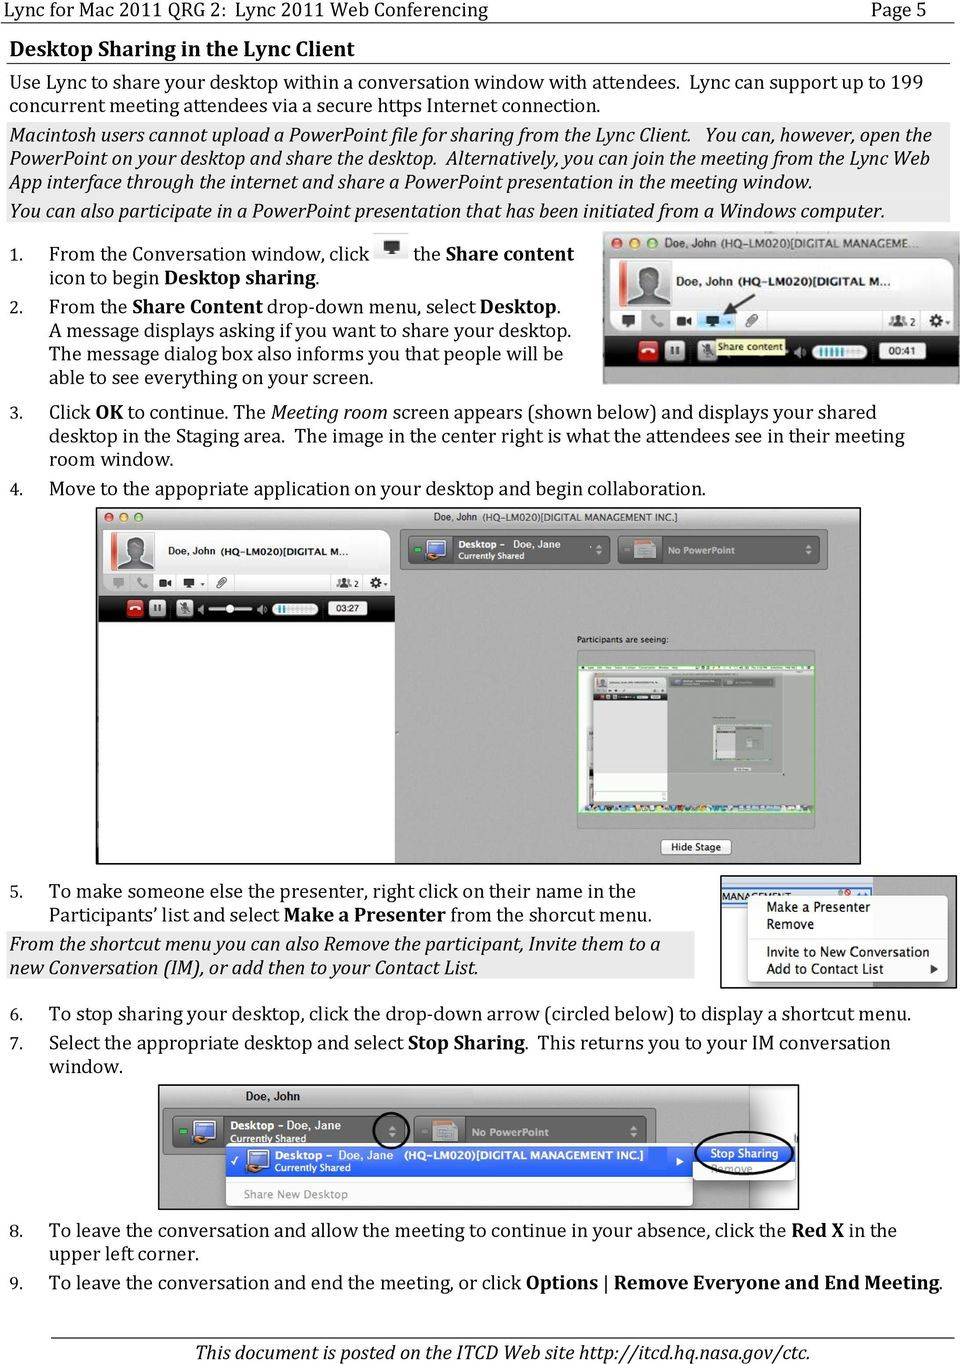 Quick Reference Guide 2 Lync for Mac 2011 Lync Web Conferencing - PDF